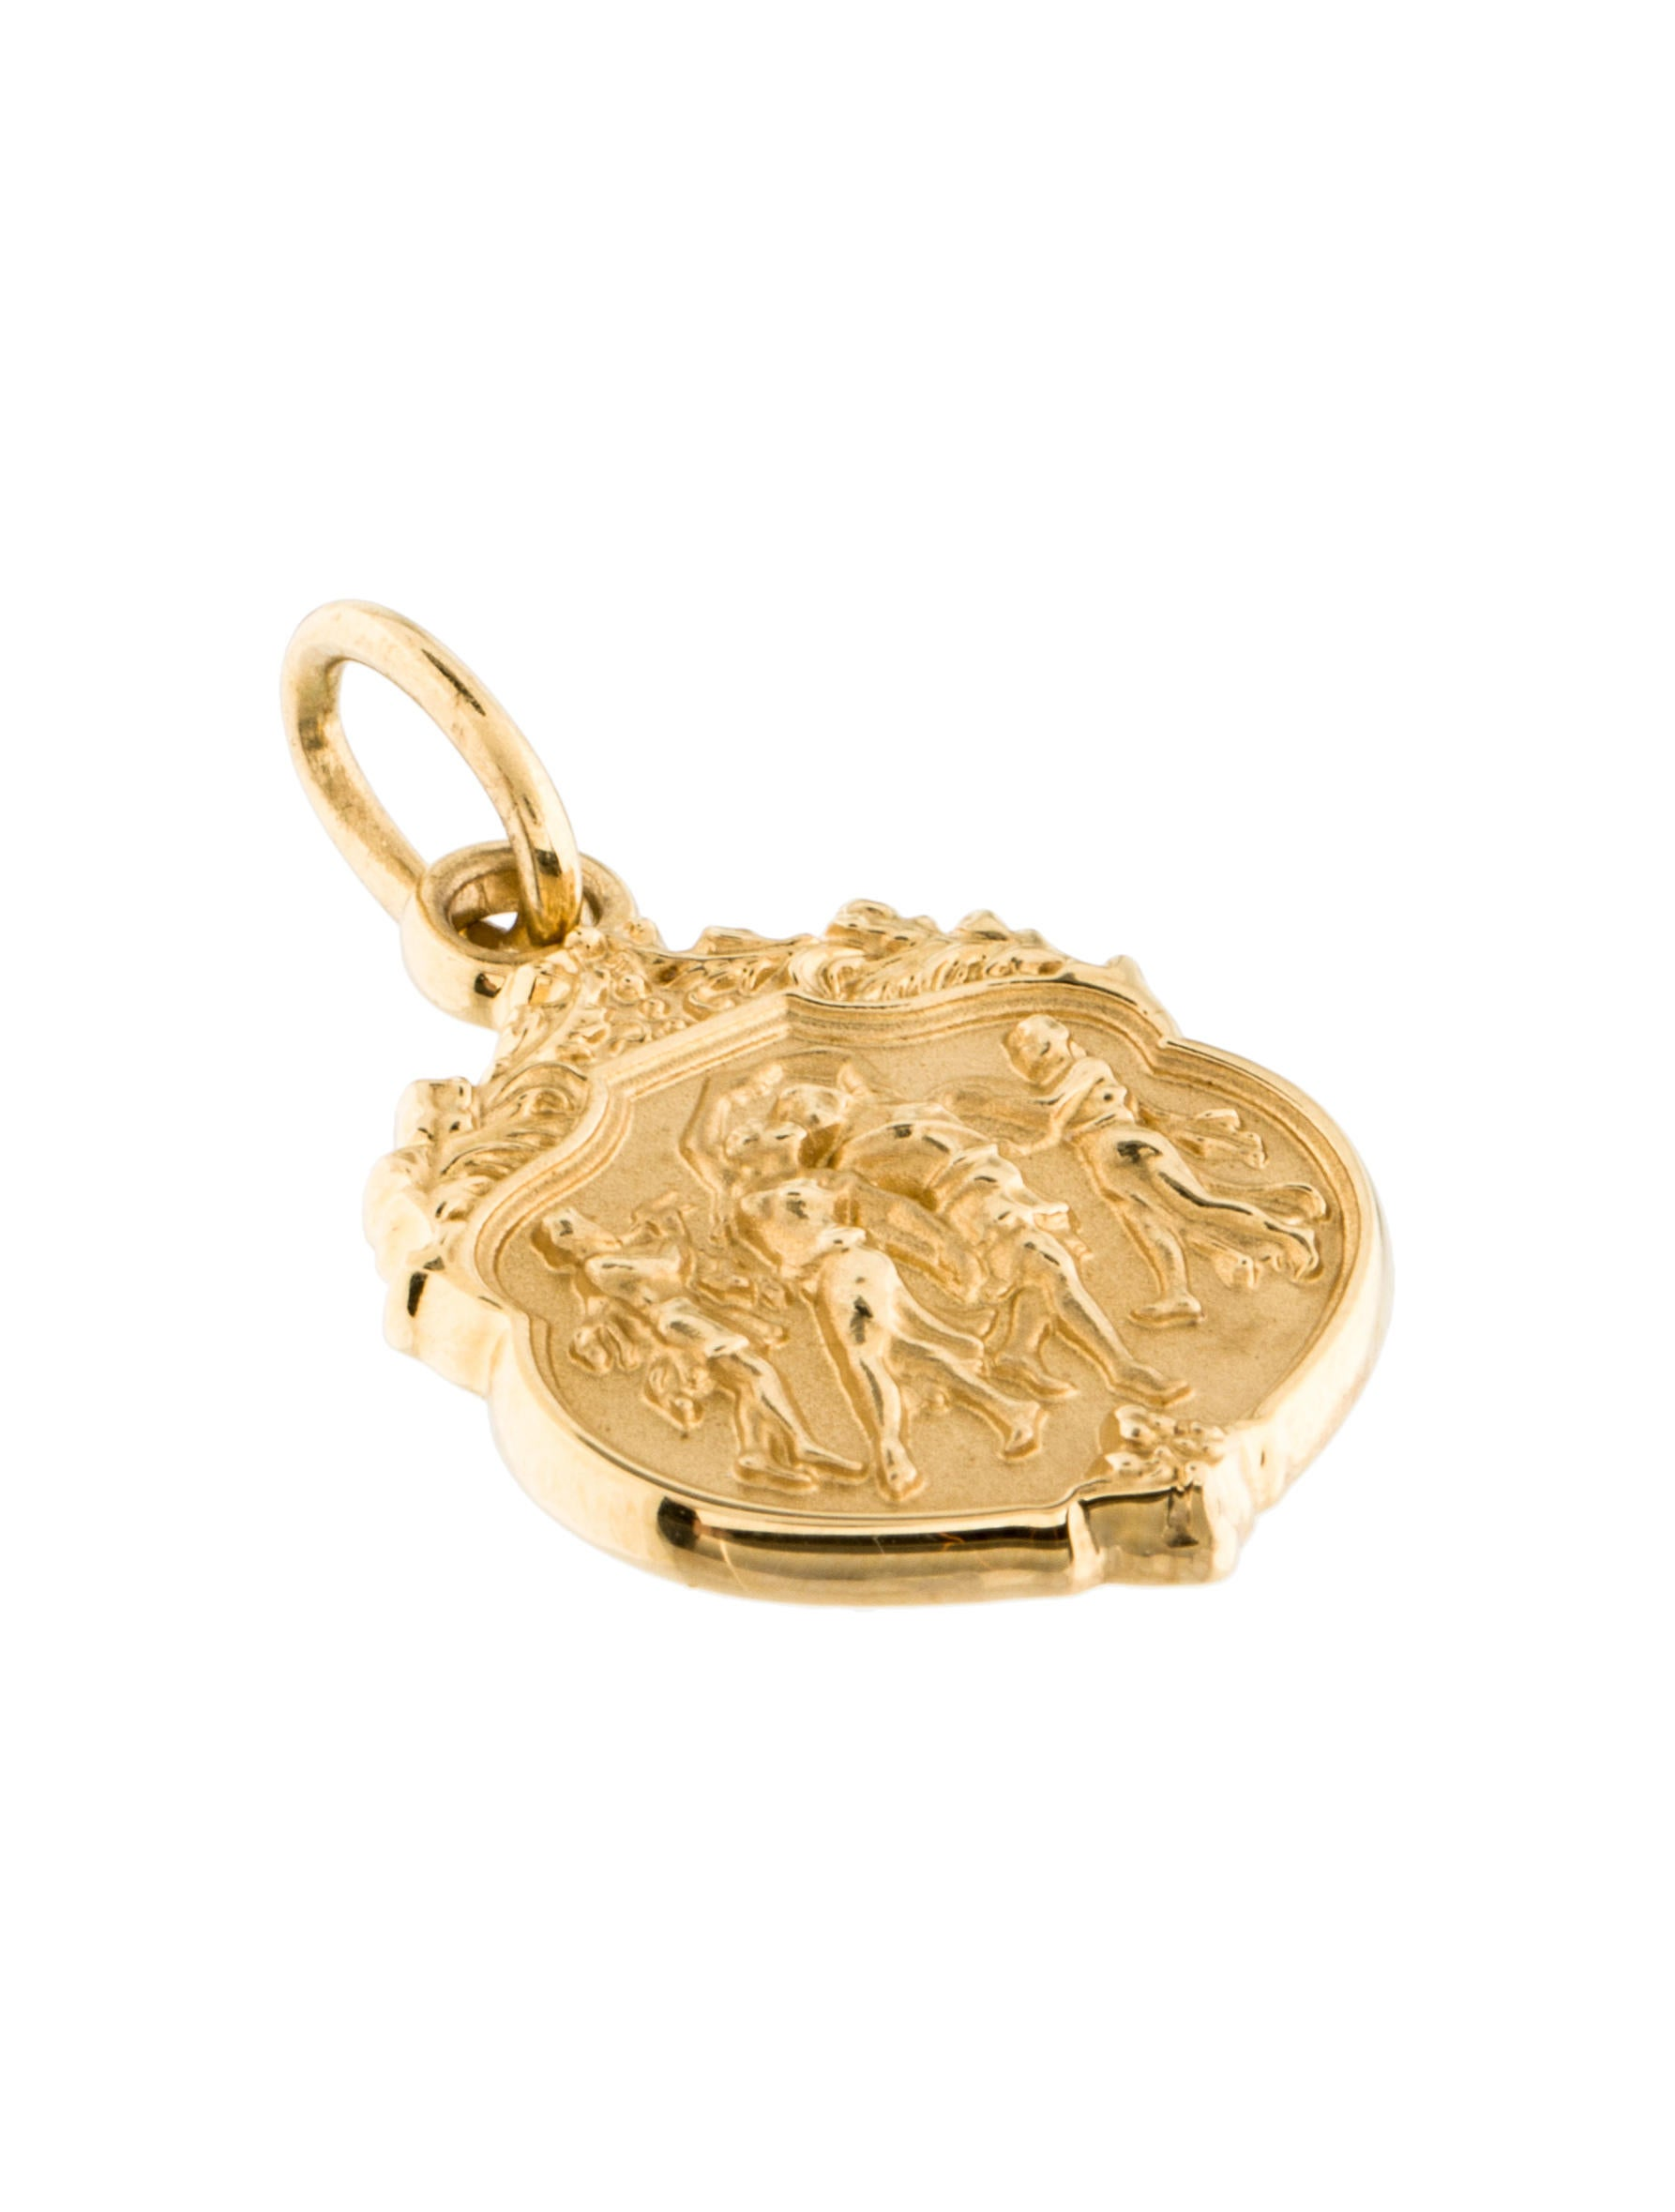 aphrodite jewelry silver product bronze pendant in gallery lyst konstantino gold coin normal metallic